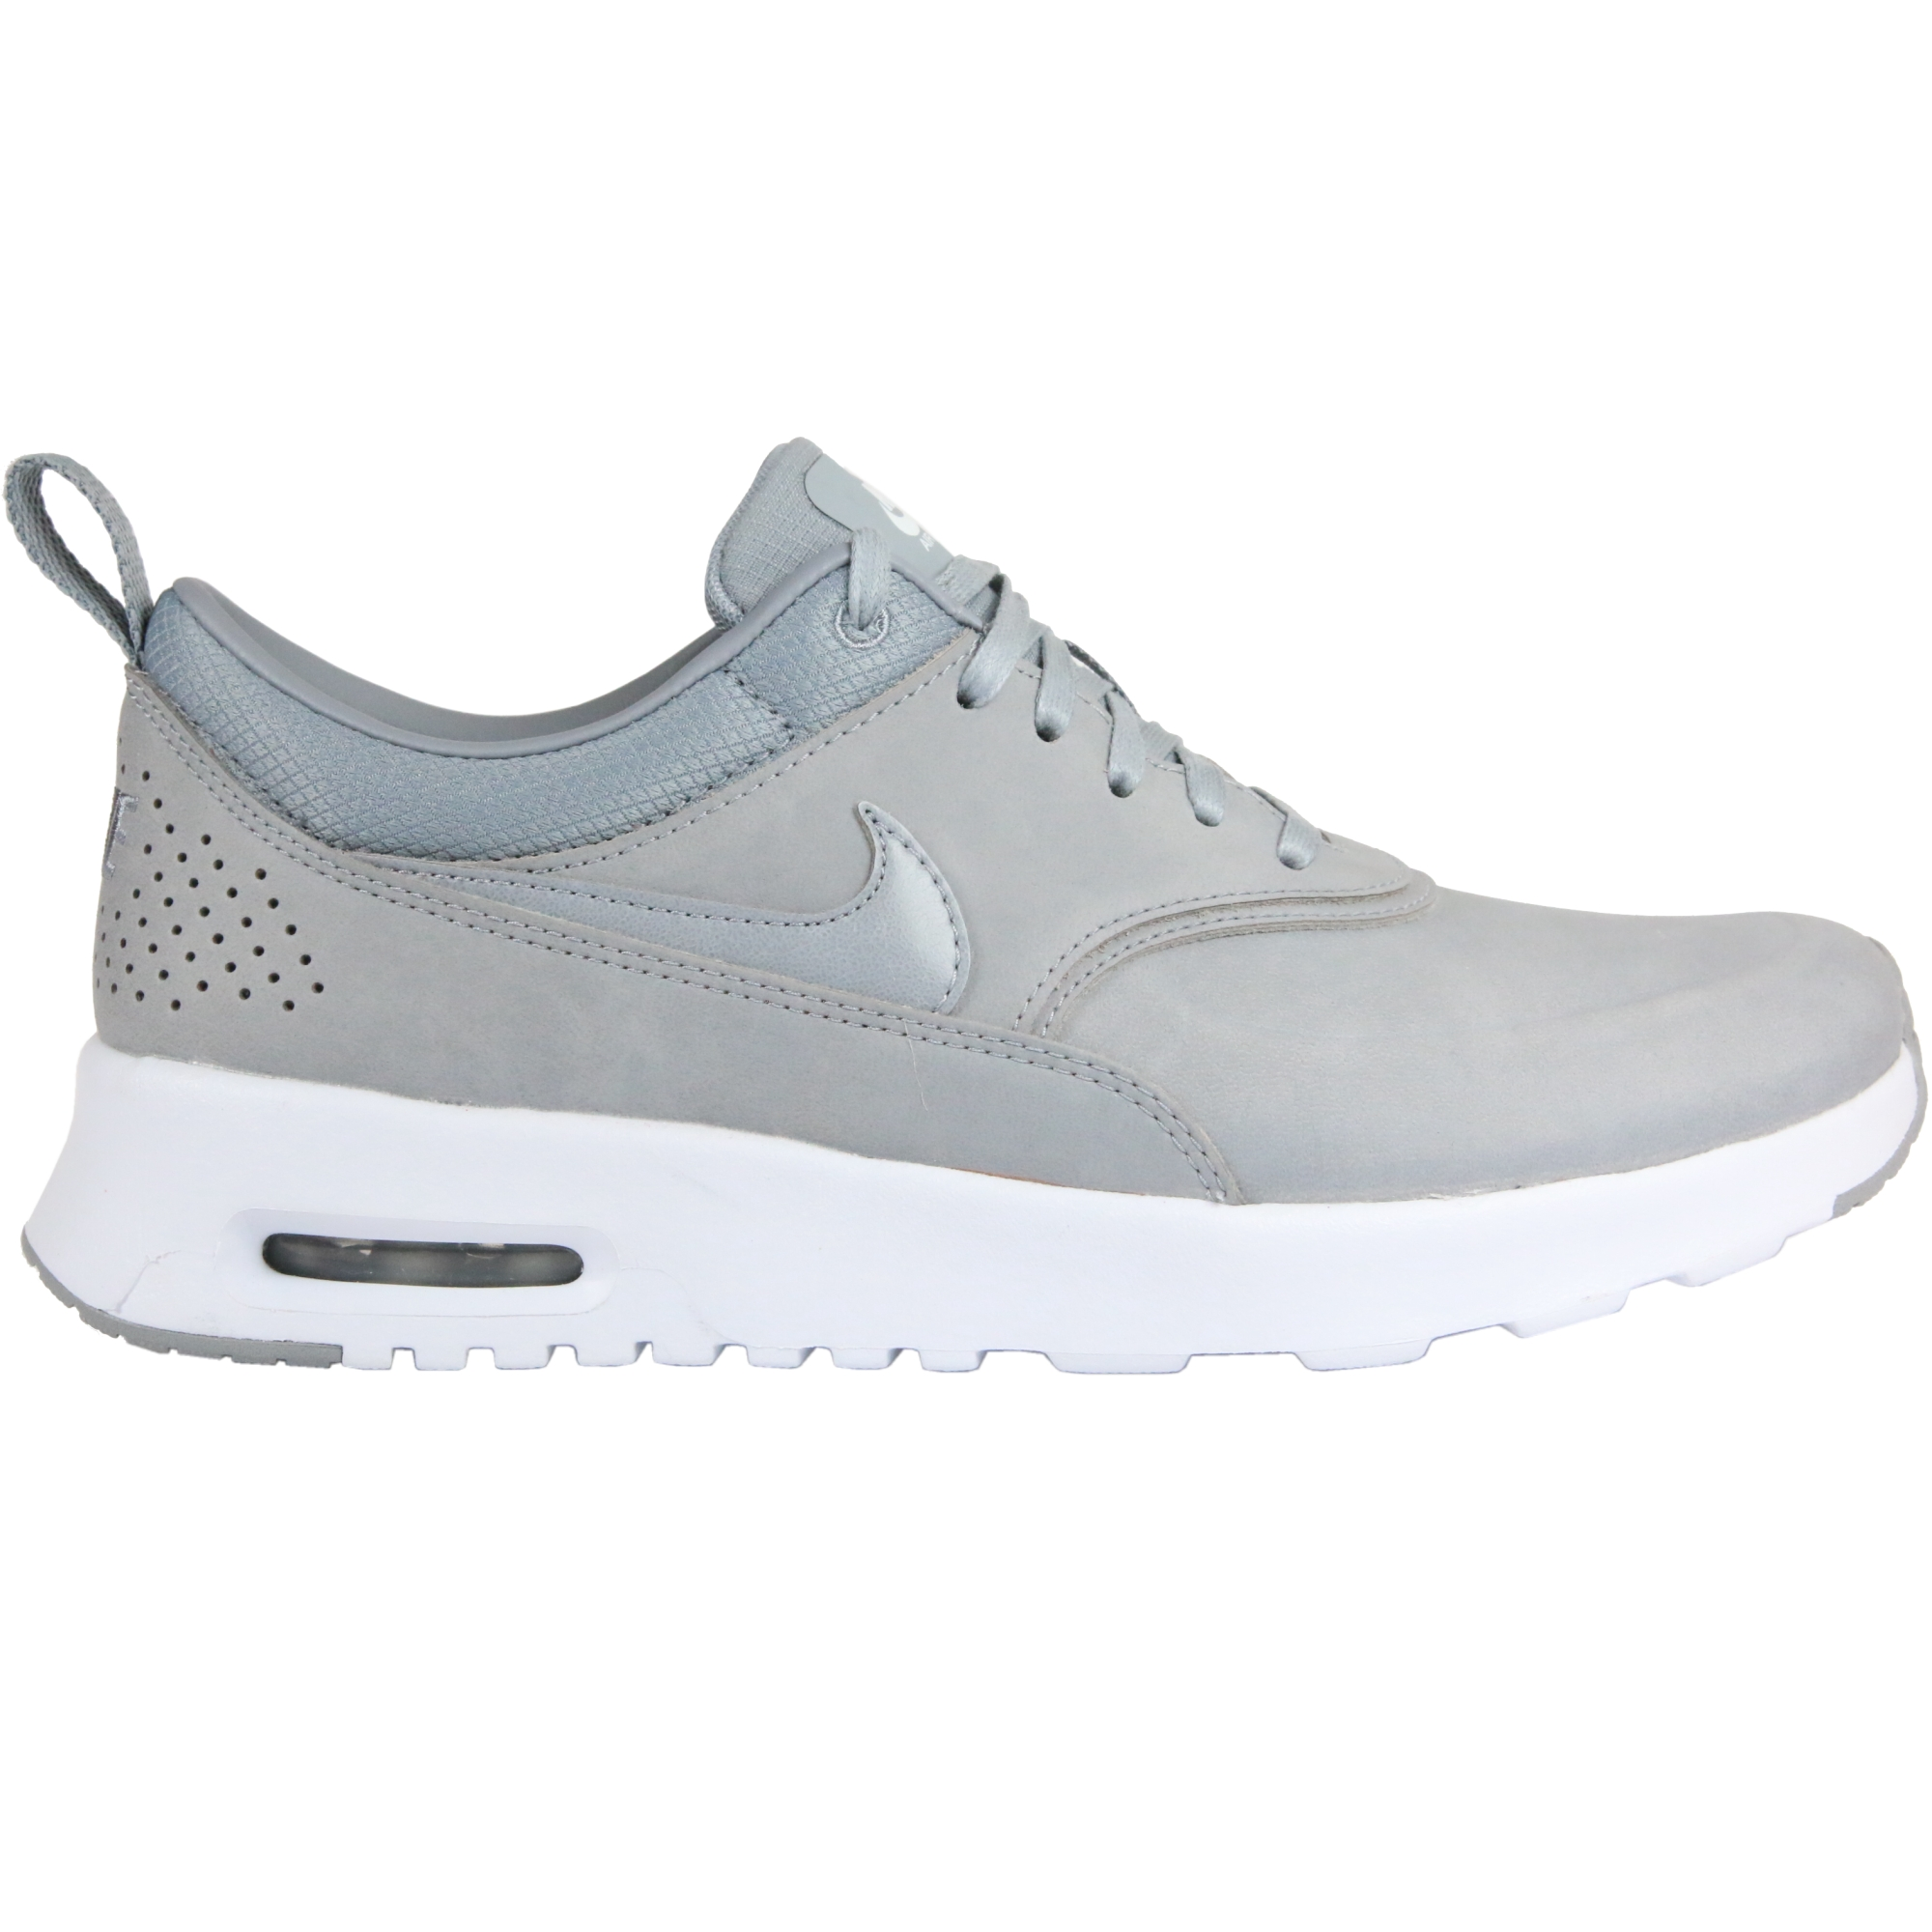 nike air max thea schuhe turnschuhe sneaker damen pink wei schwarz ebay. Black Bedroom Furniture Sets. Home Design Ideas